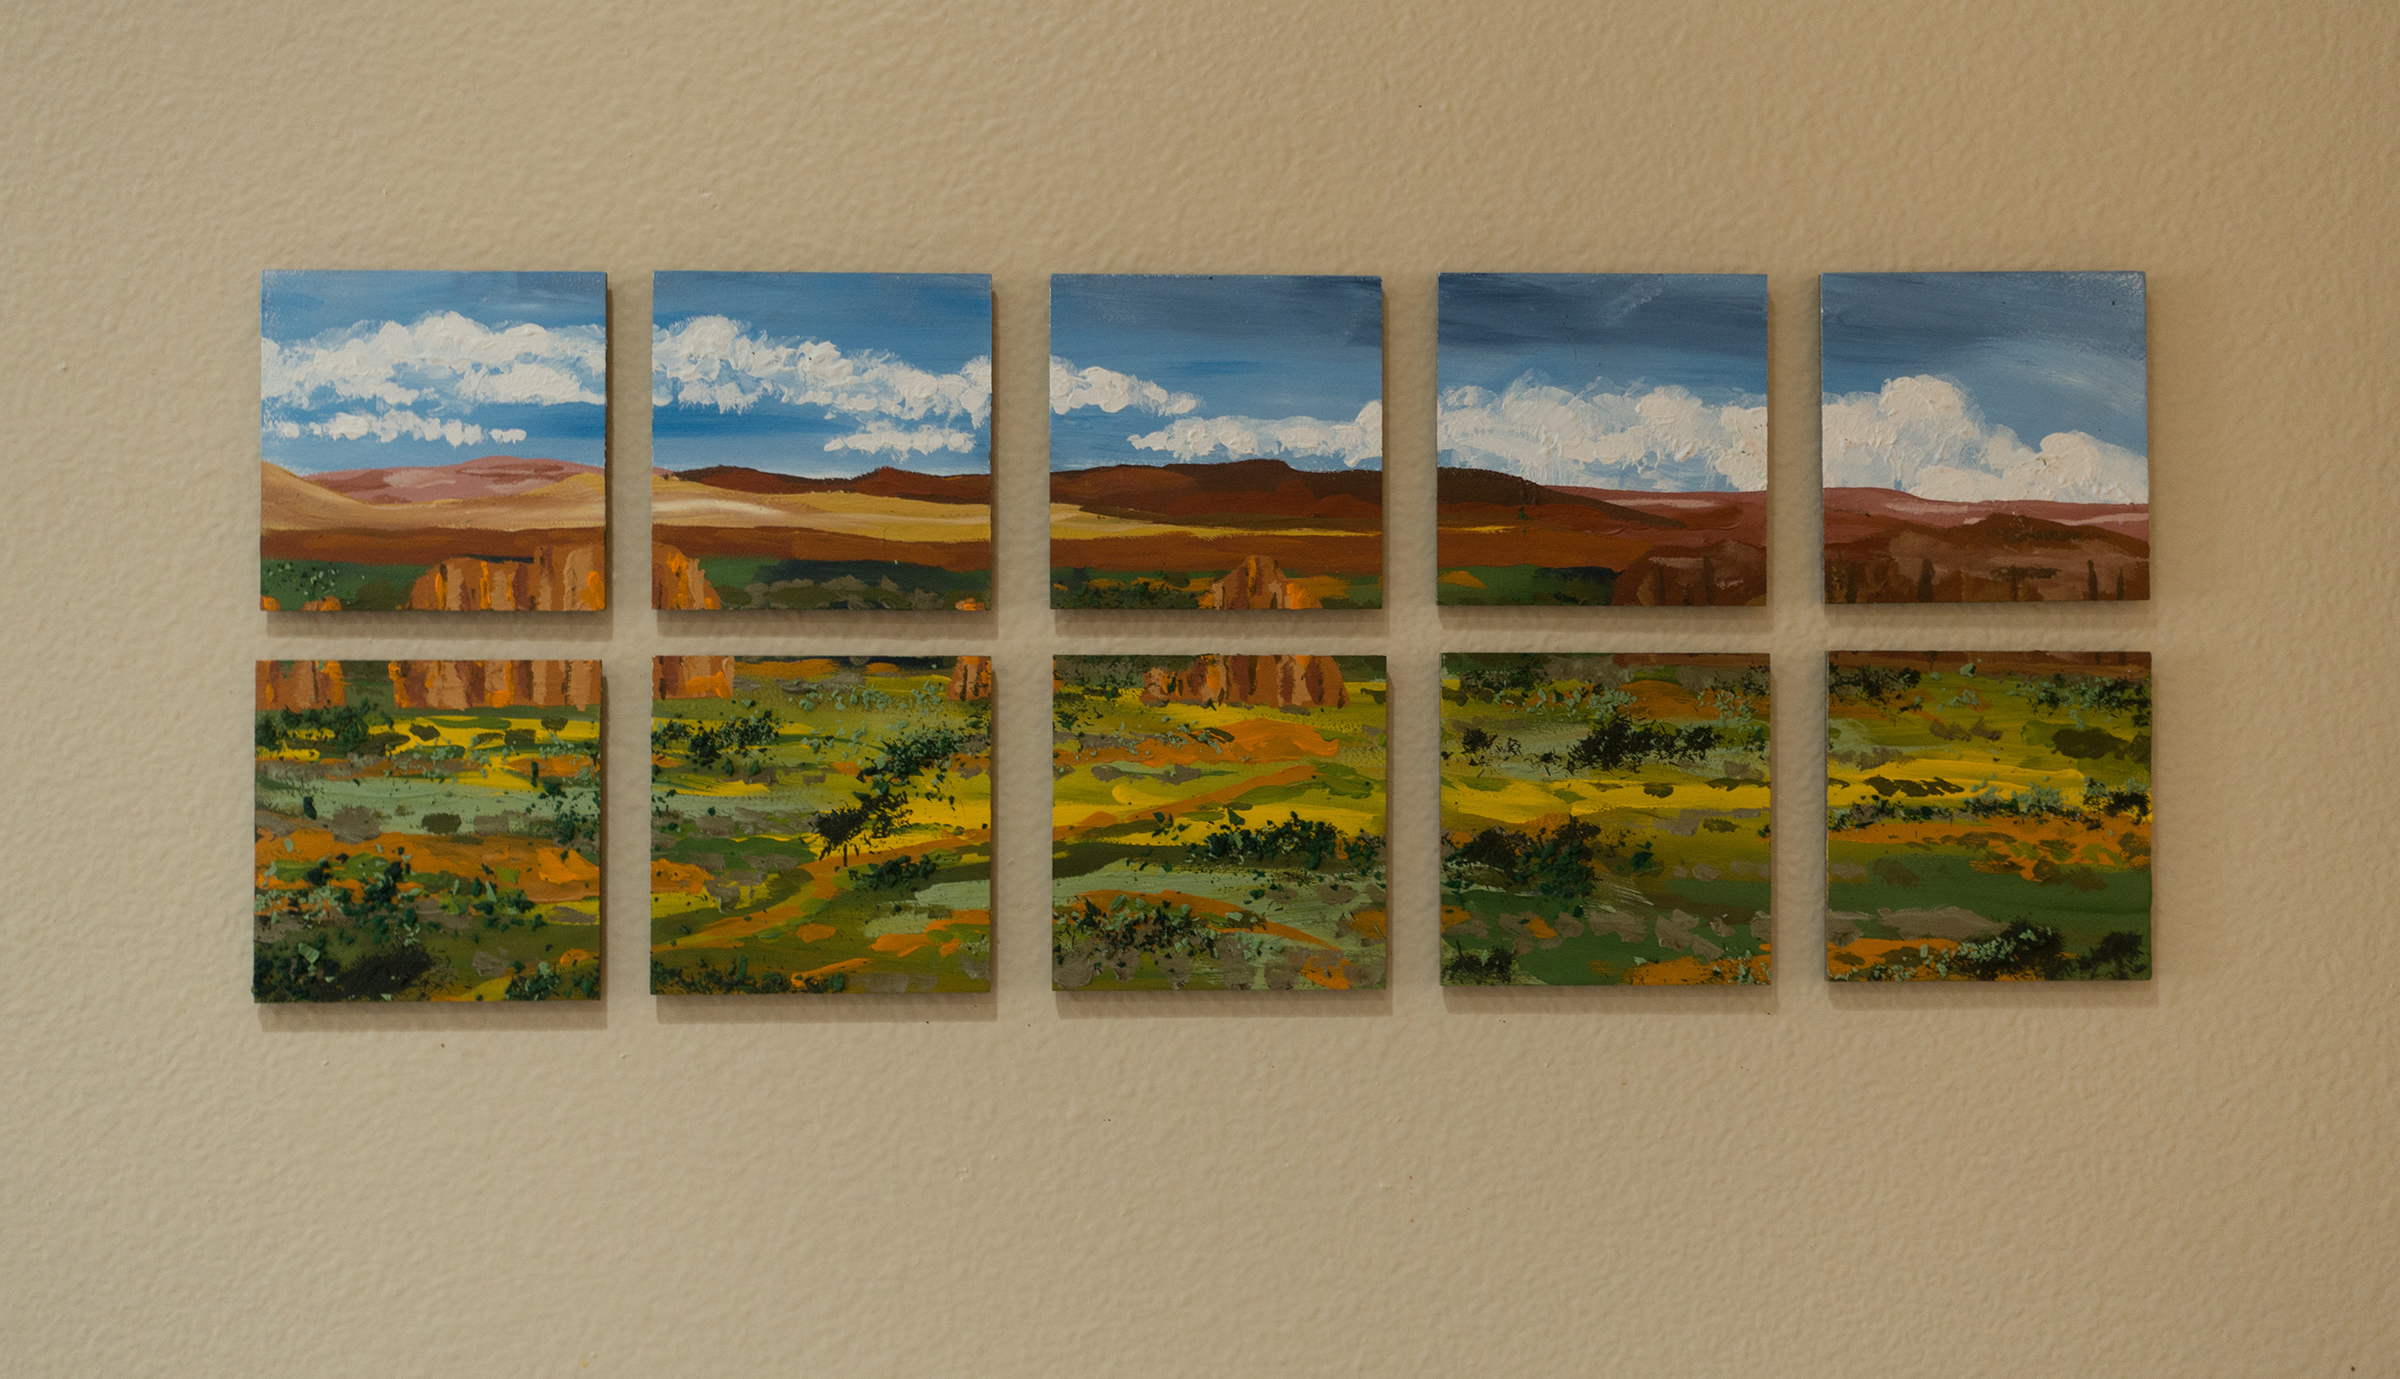 Finished piece installed on my kitchen wall, attached with 3M Command Strips.